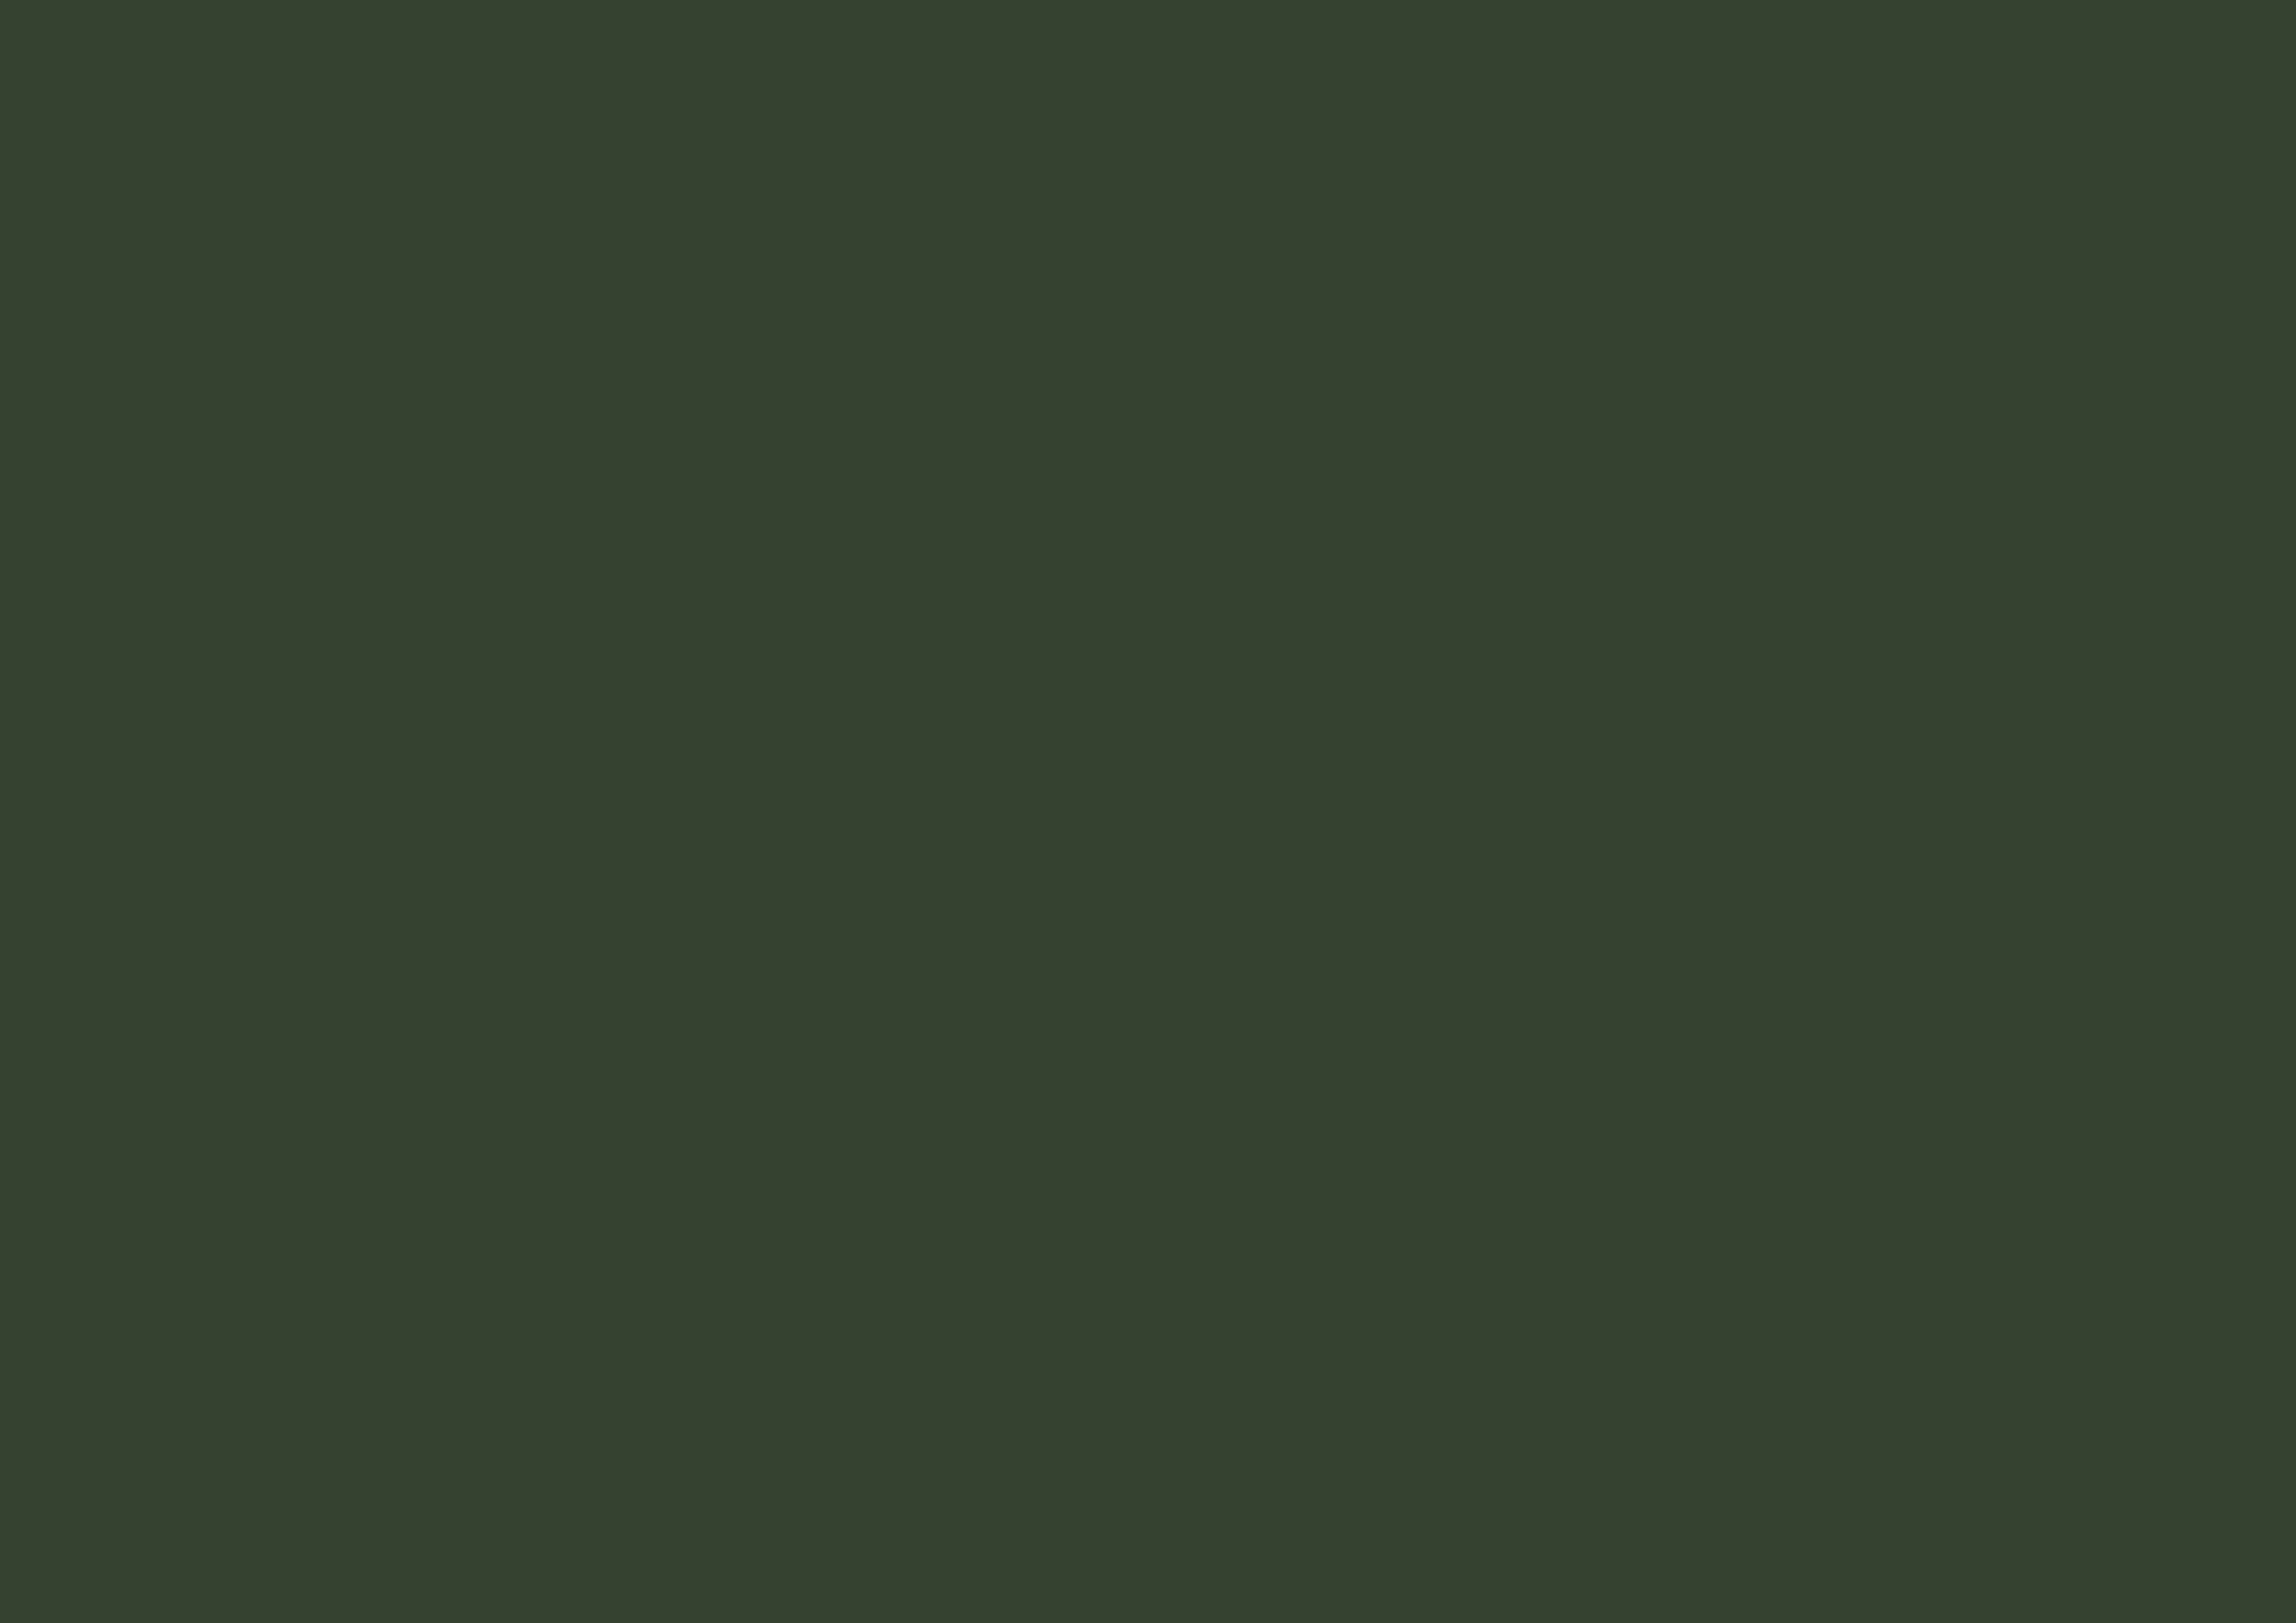 3508x2480 Kombu Green Solid Color Background